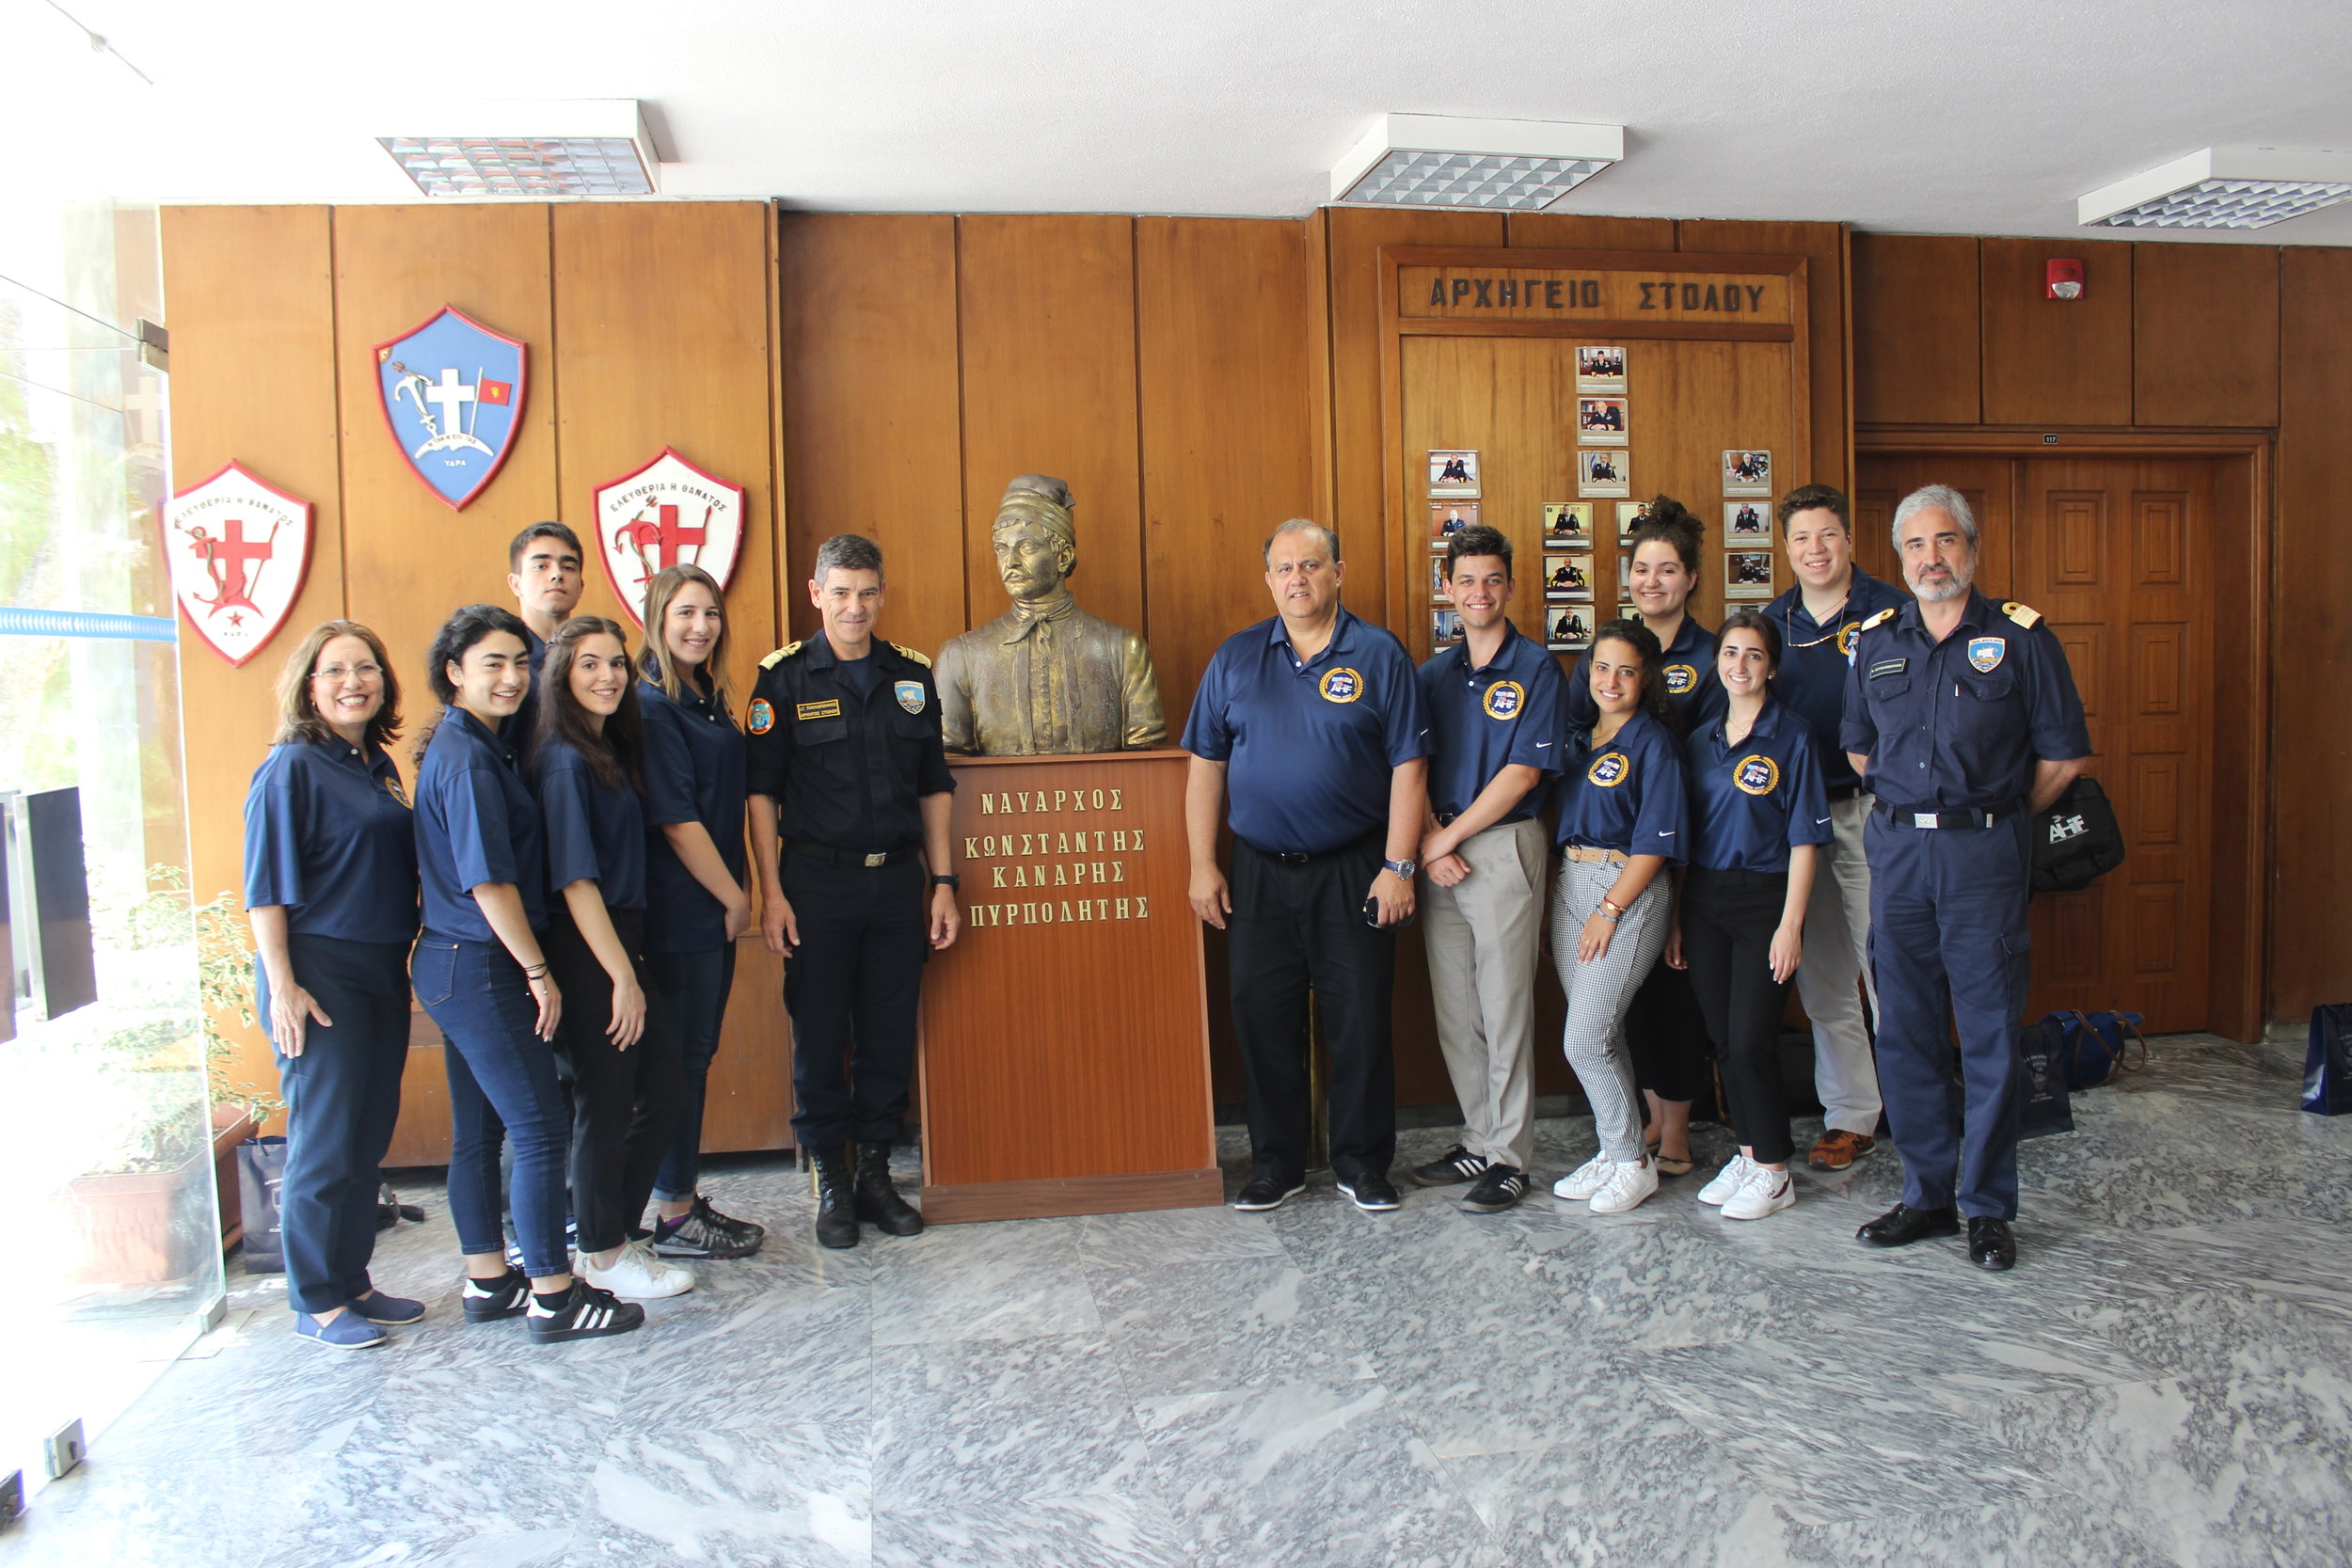 Visit to Salamis Naval Base with Commander of the Greek Naval Fleet, Vice Admiral Ioannis Pavlopoulos (left of statue).